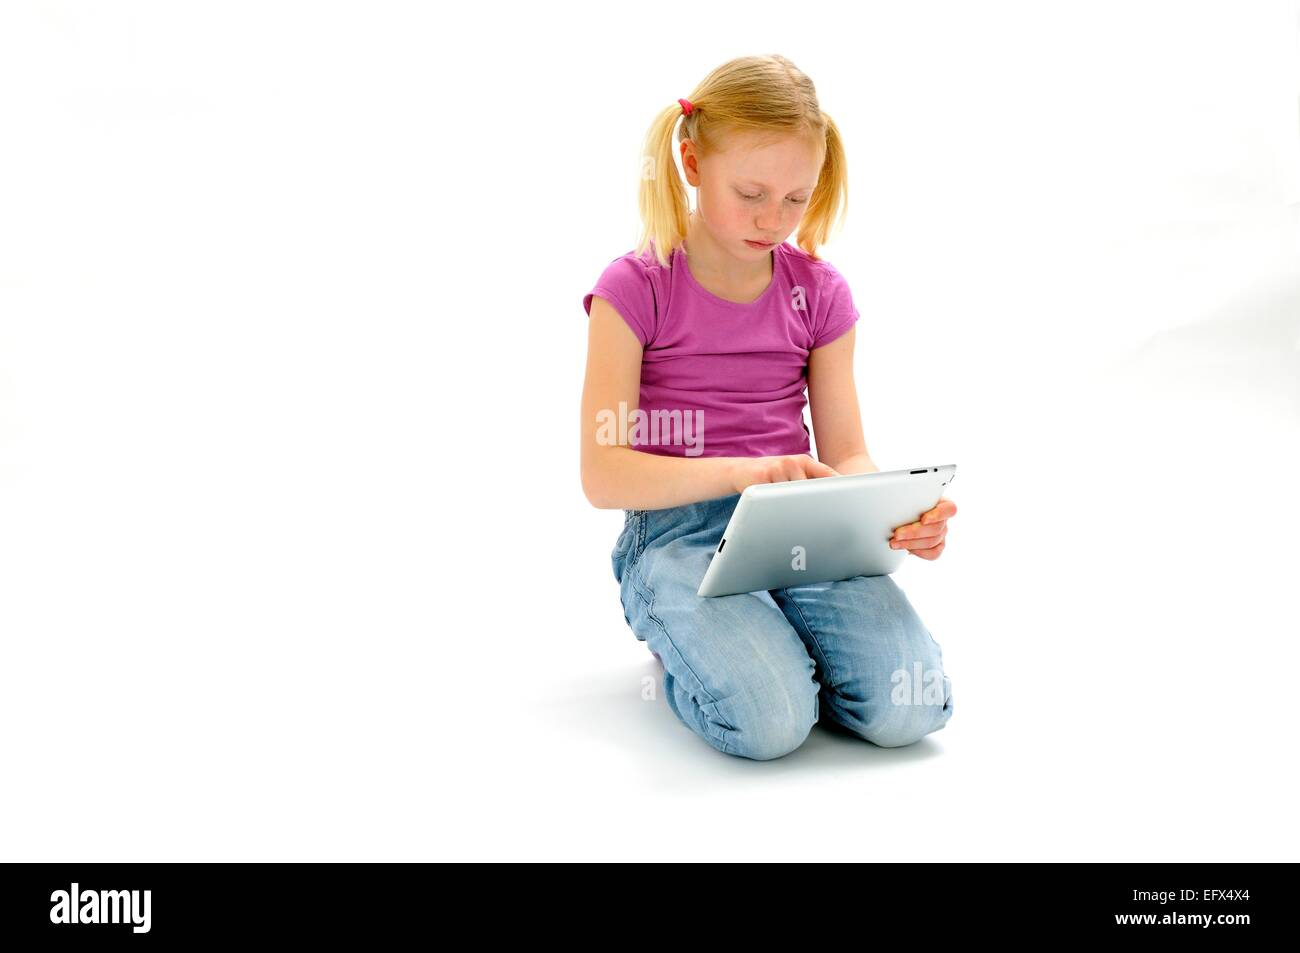 Young girl working on tablet computer - Stock Image